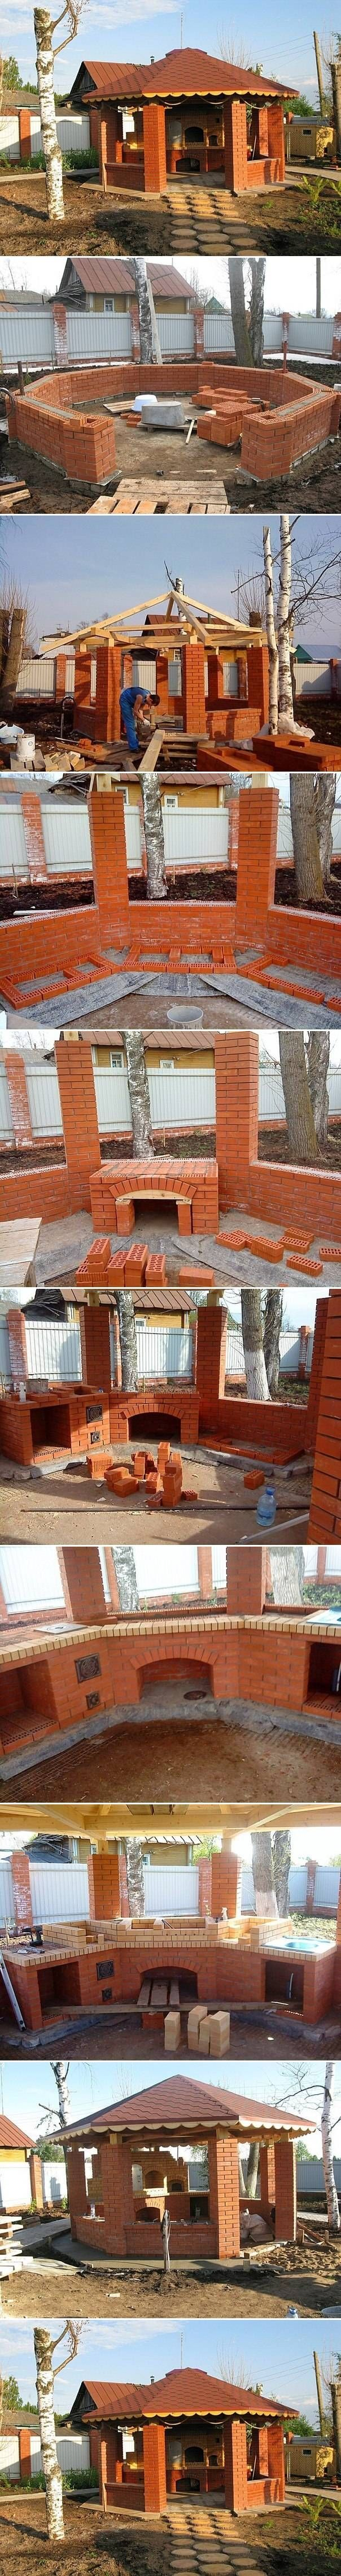 DIY Gazebo With Barbecue